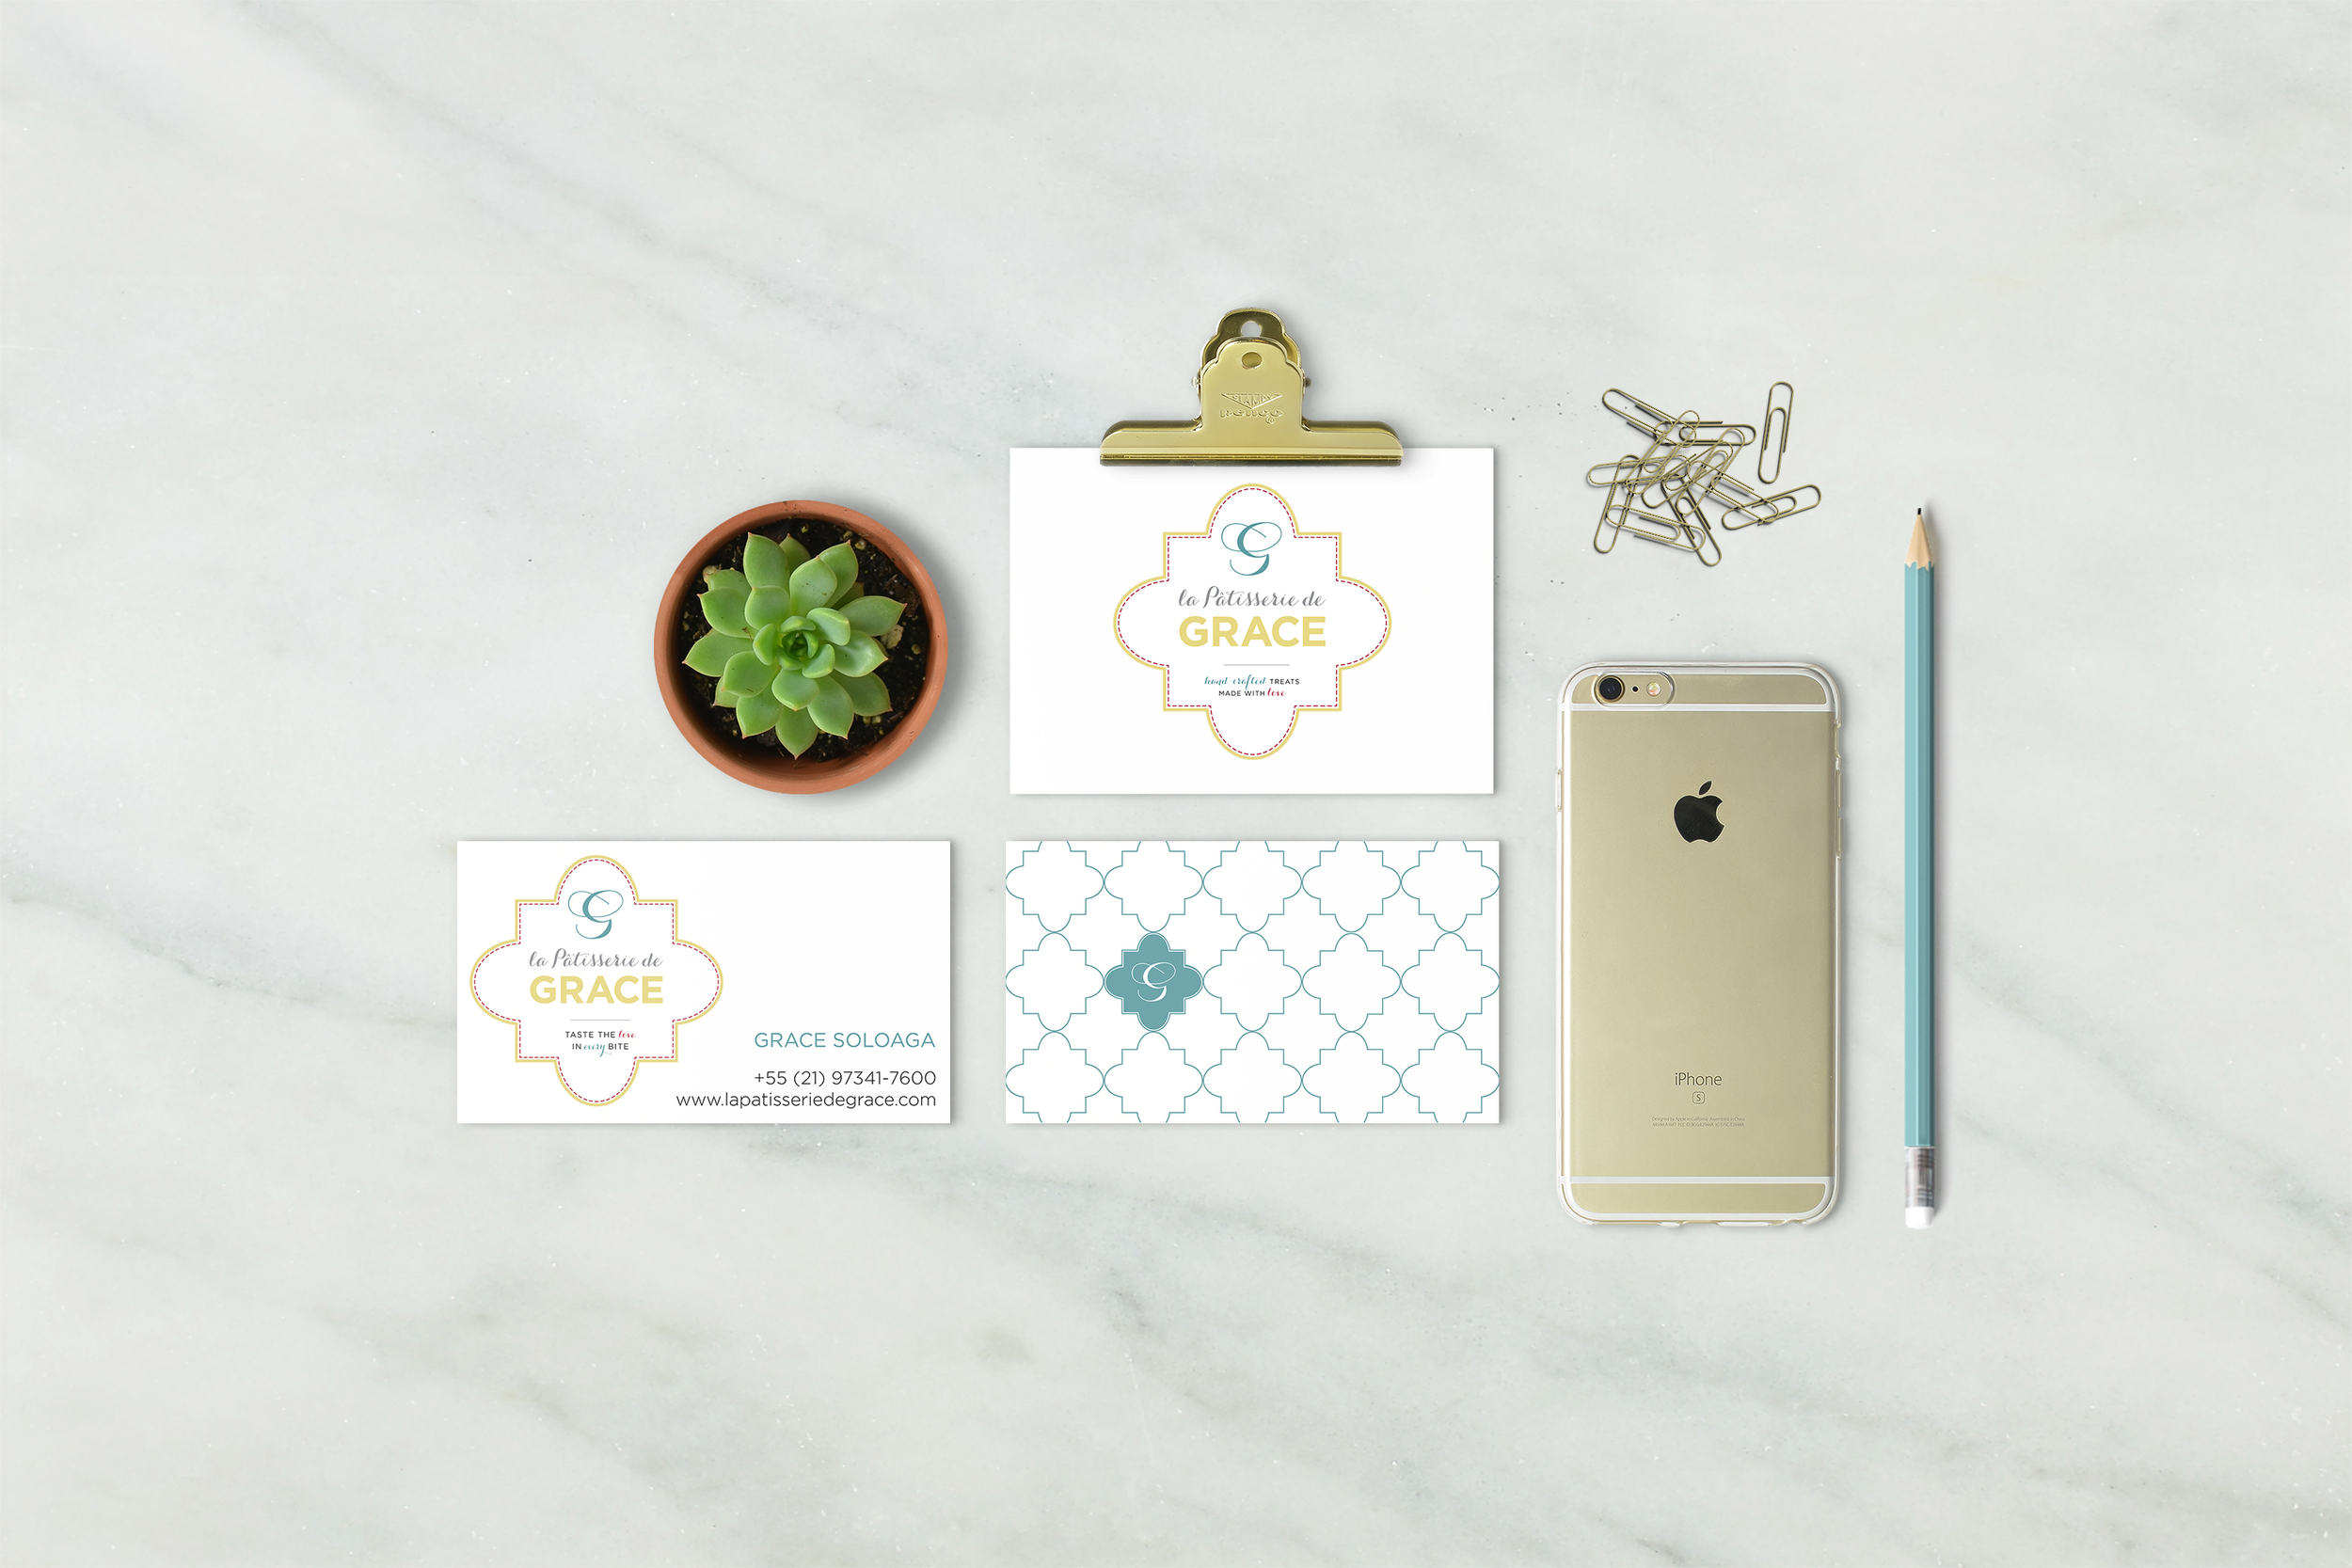 Branding implementation for La Patisserie de Grace, with clean flatlay of business cards and marketing post card